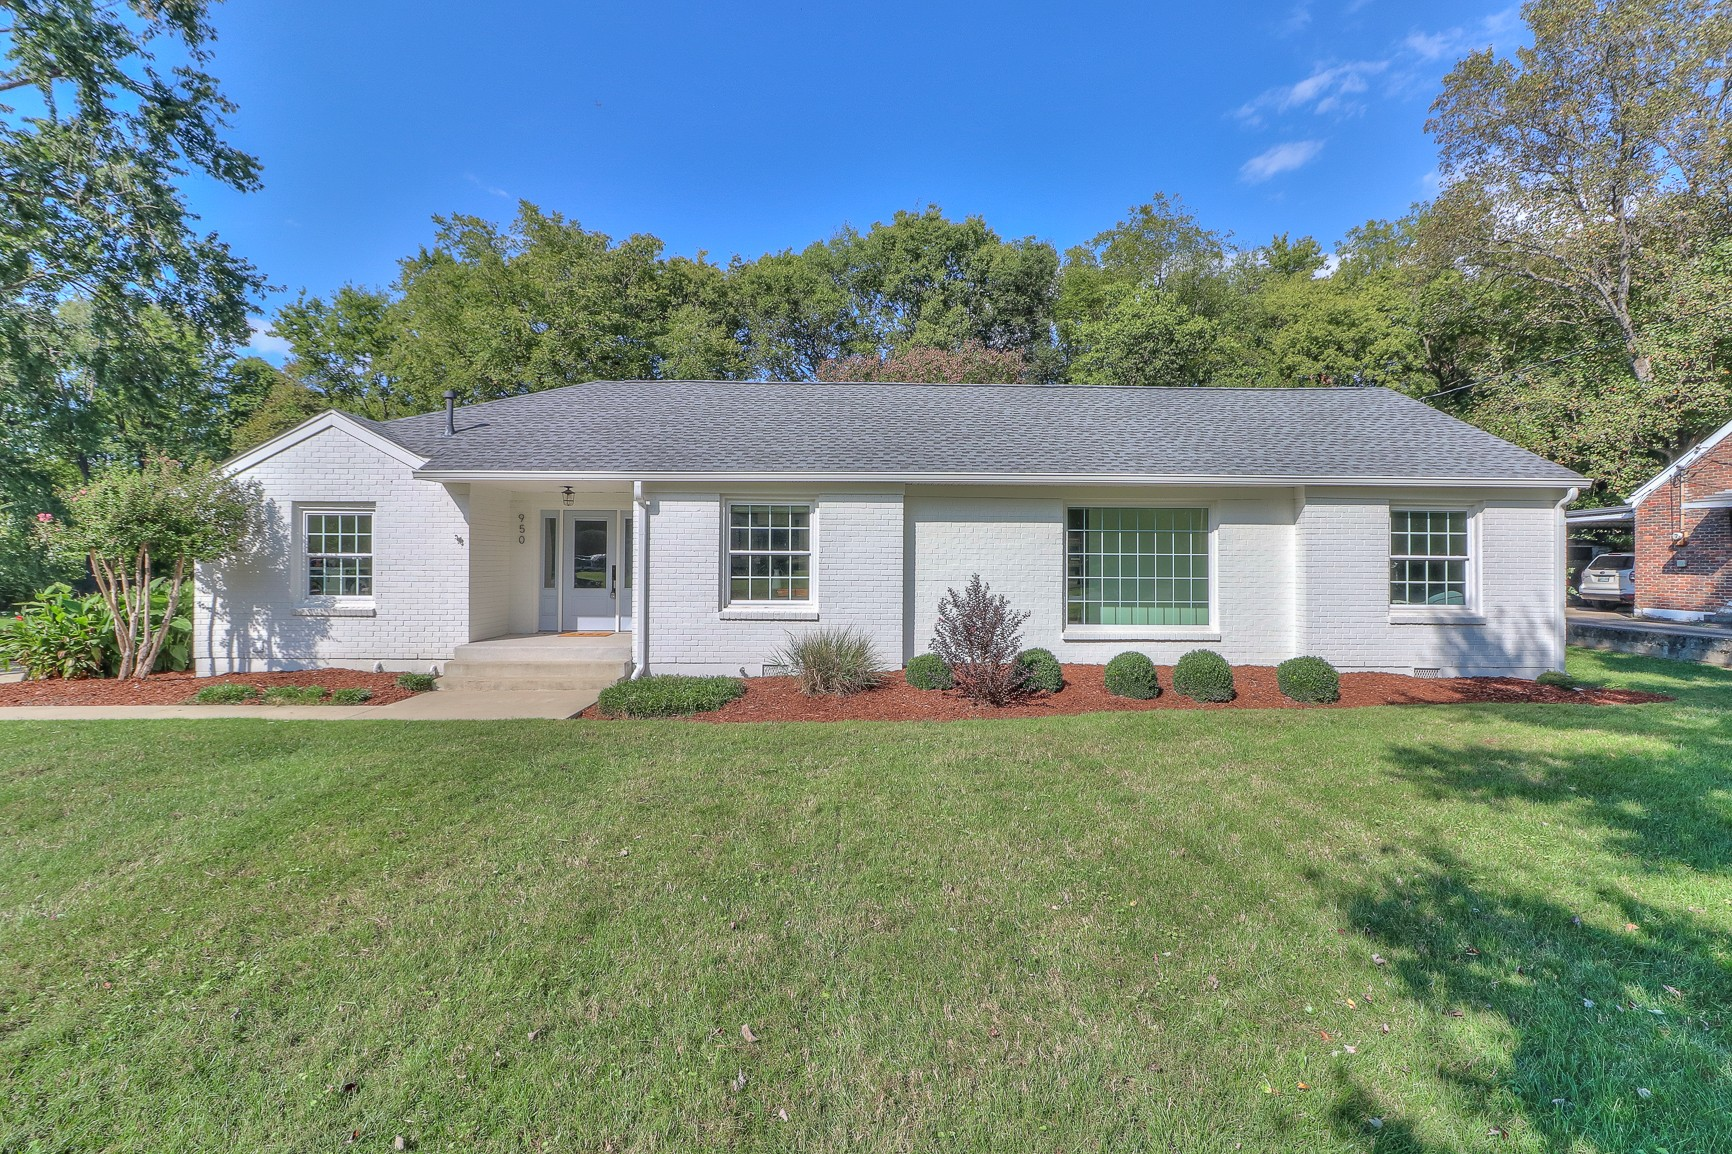 Charming Renovated Oak Hill Ranch! Featuring incredible natural light with updates throughout,including freshly painted interior and exterior, new  windows, hardwoods, light fixtures and hardware. All bathrooms have been renovated, Custom built-in wood closets, Brand new kitchen appliances, new quartz countertops, and backsplash, new laundry room, new hardscaping, driveway, deck, and landscaping. Roof 2021, water heater 2020, HVAC & ductwork 2020.